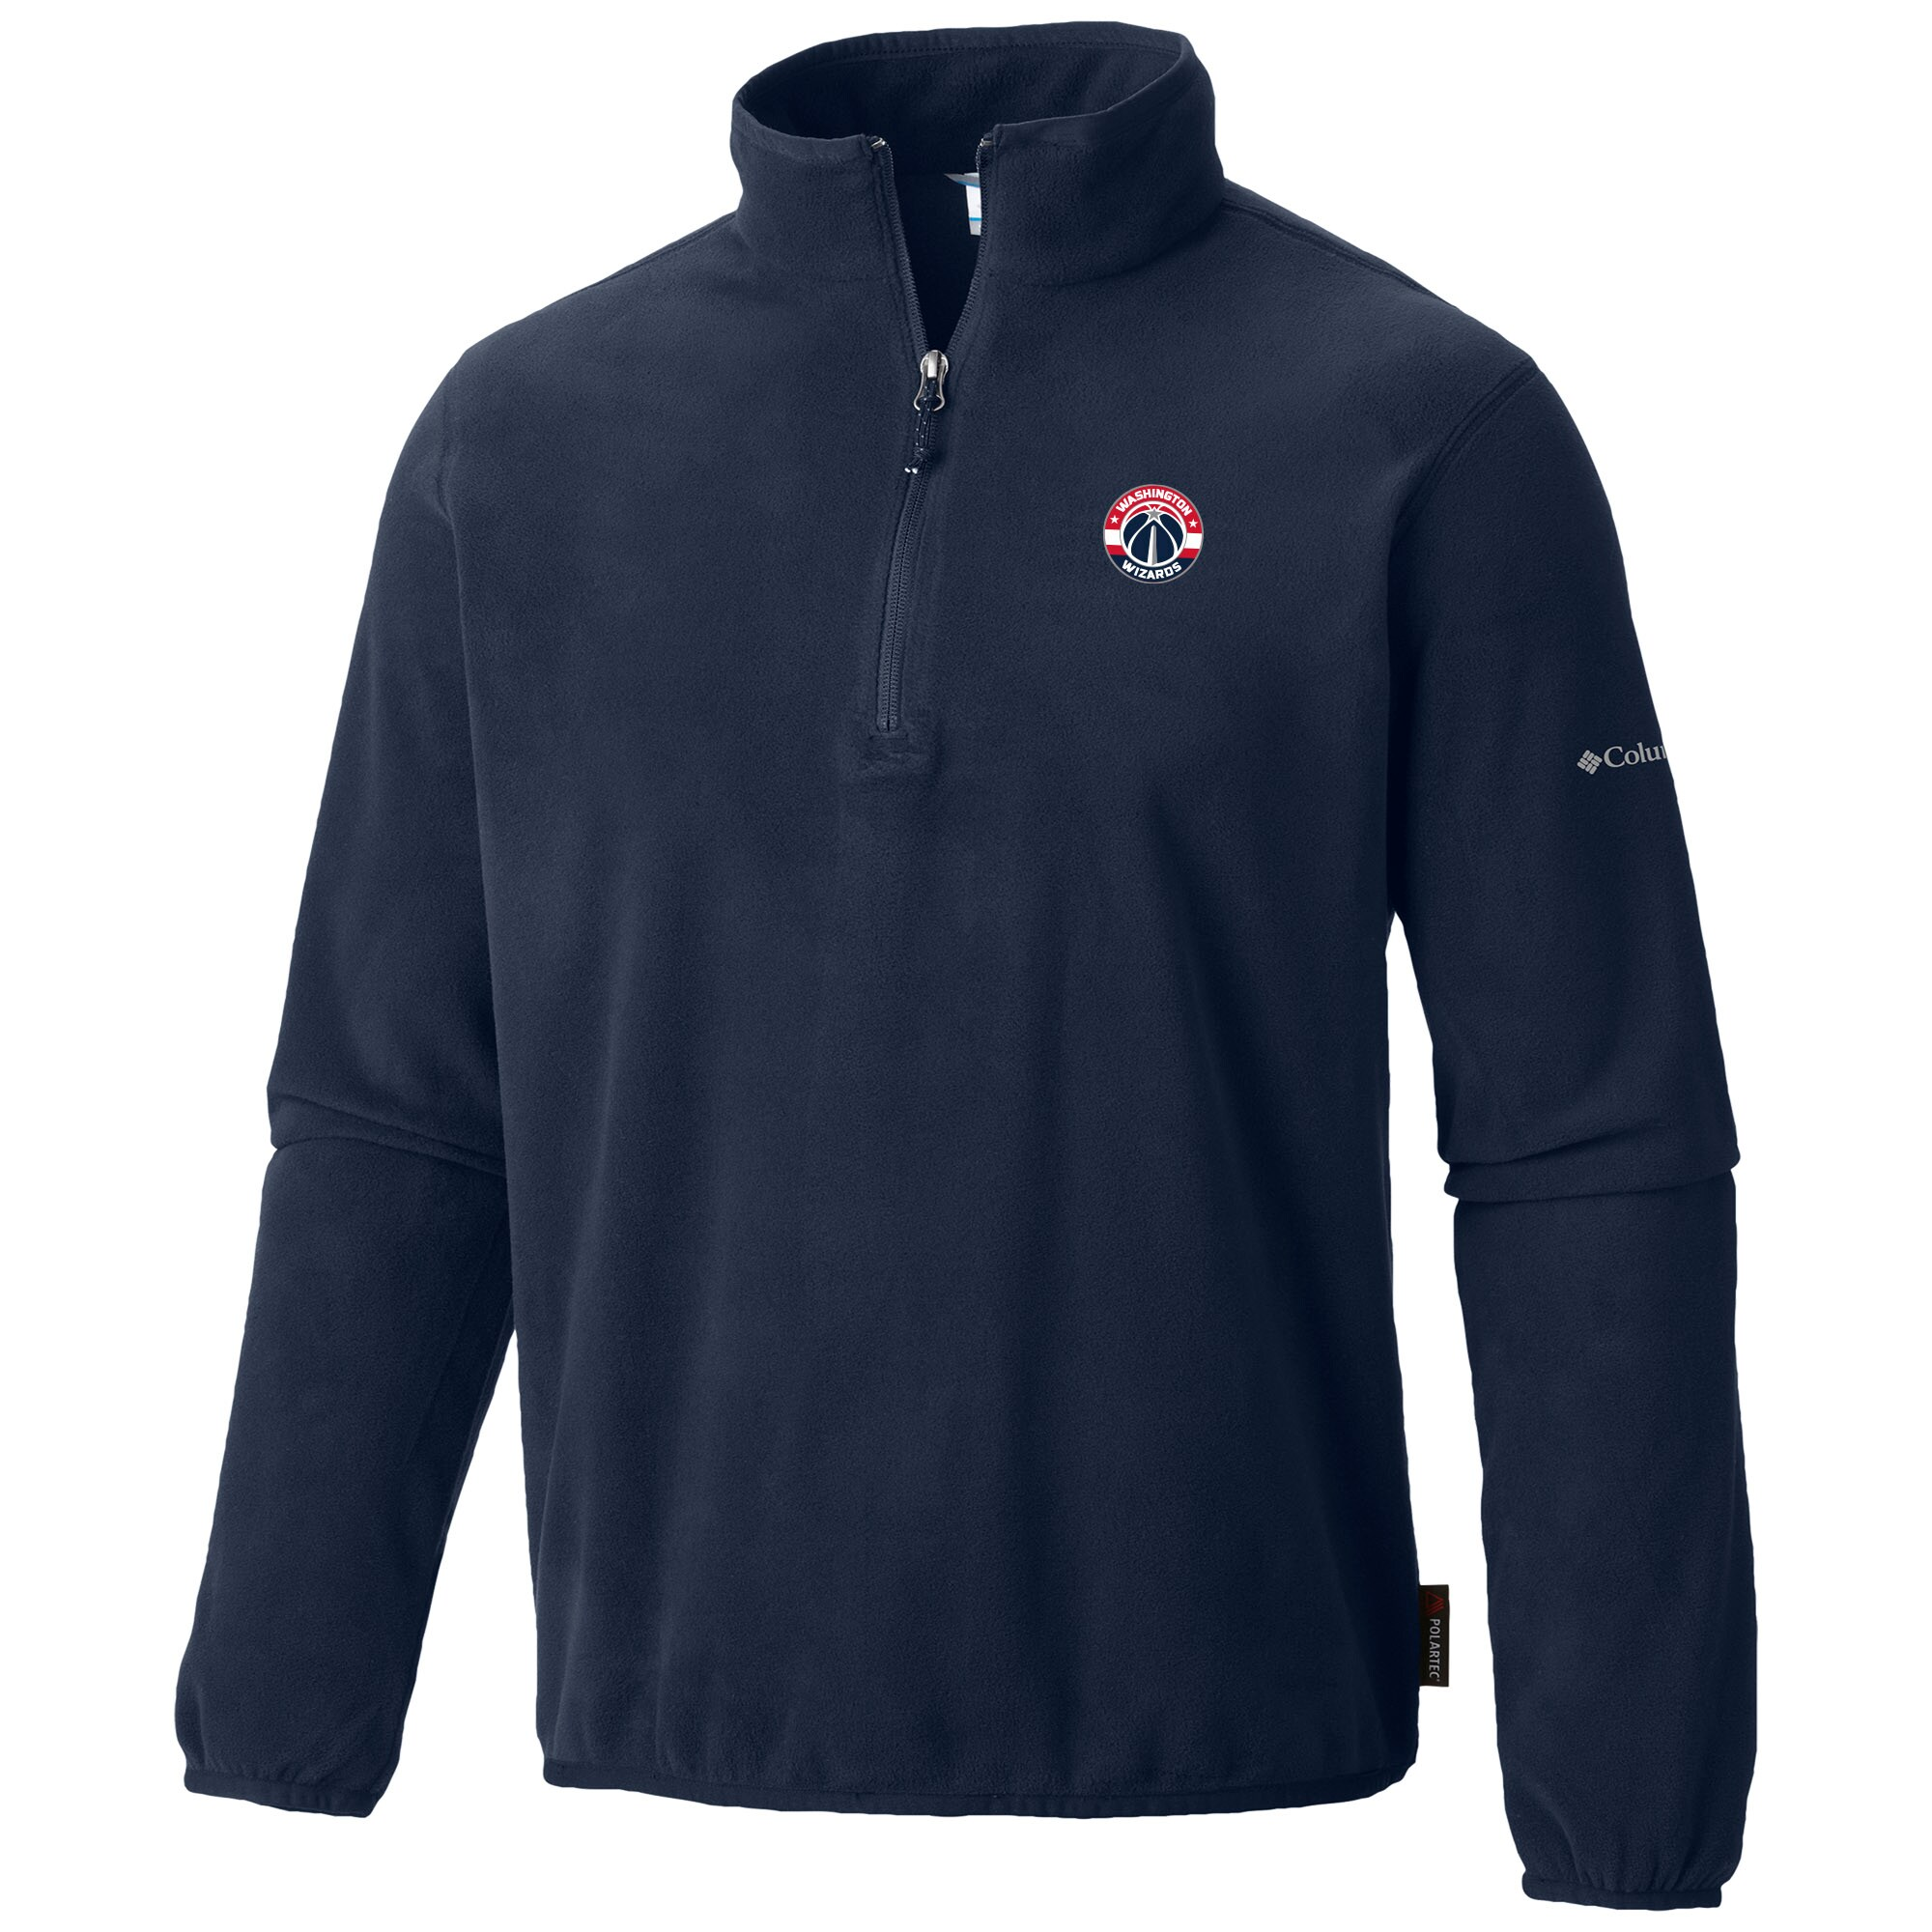 Washington Wizards Columbia Ridge Repeat Half-Zip Fleece Jacket - Navy